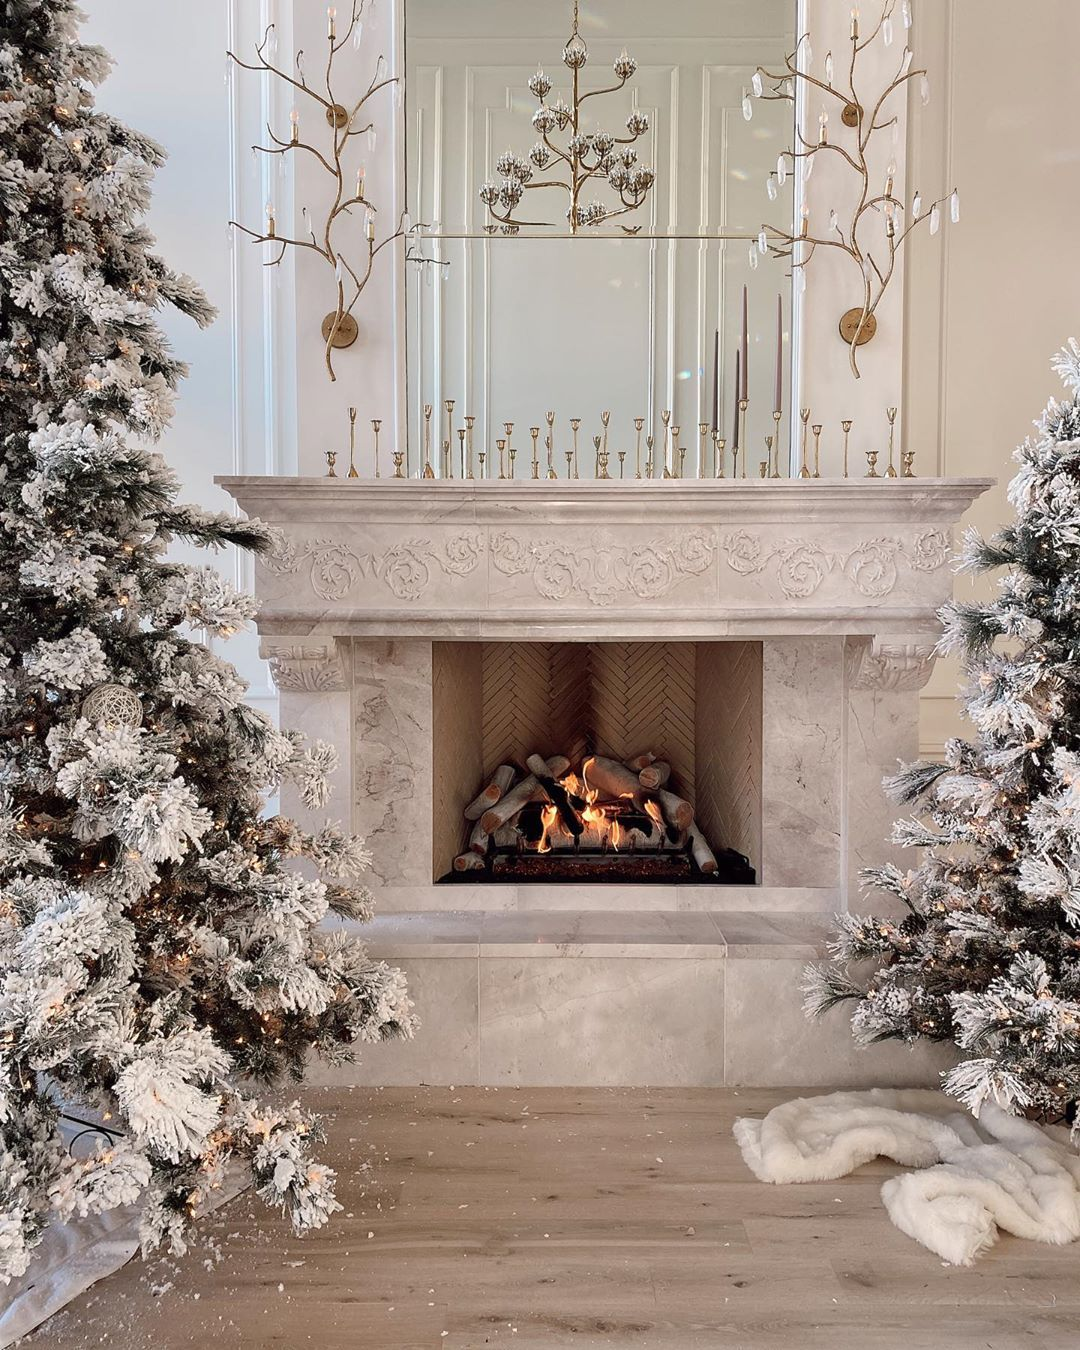 20 5k Likes 278 Comments Rach Parcell Pink Peonies Rachparcell On Instagram Here S A Picture Of Some O Farmhouse Christmas Decor Home Fireplace Decor